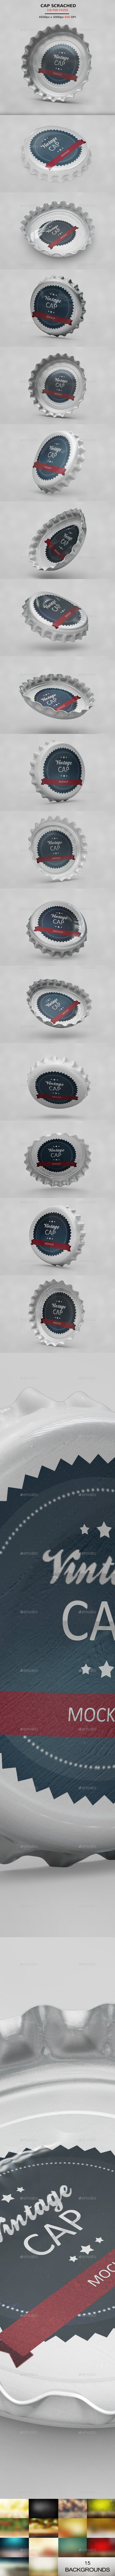 Bottle Cap Scratched Mockup - Product Mock-Ups Graphics